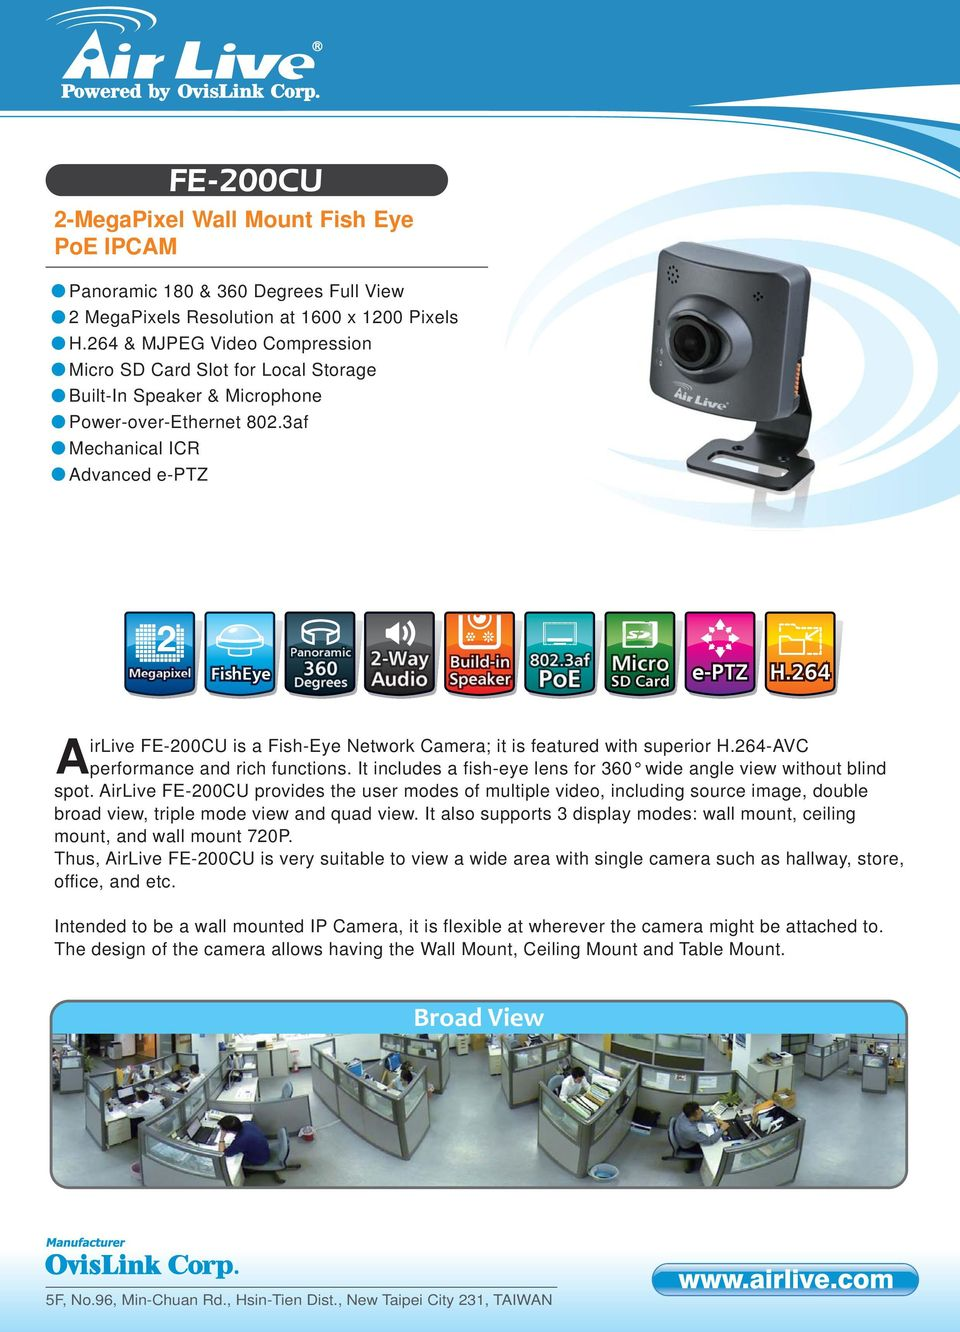 3af Mechanical ICR Advanced e-ptz 2 Megapixel FishEye Panoramic 360 Audio Build-in Speaker 802.3af PoE Micro SD Card e-ptz H.